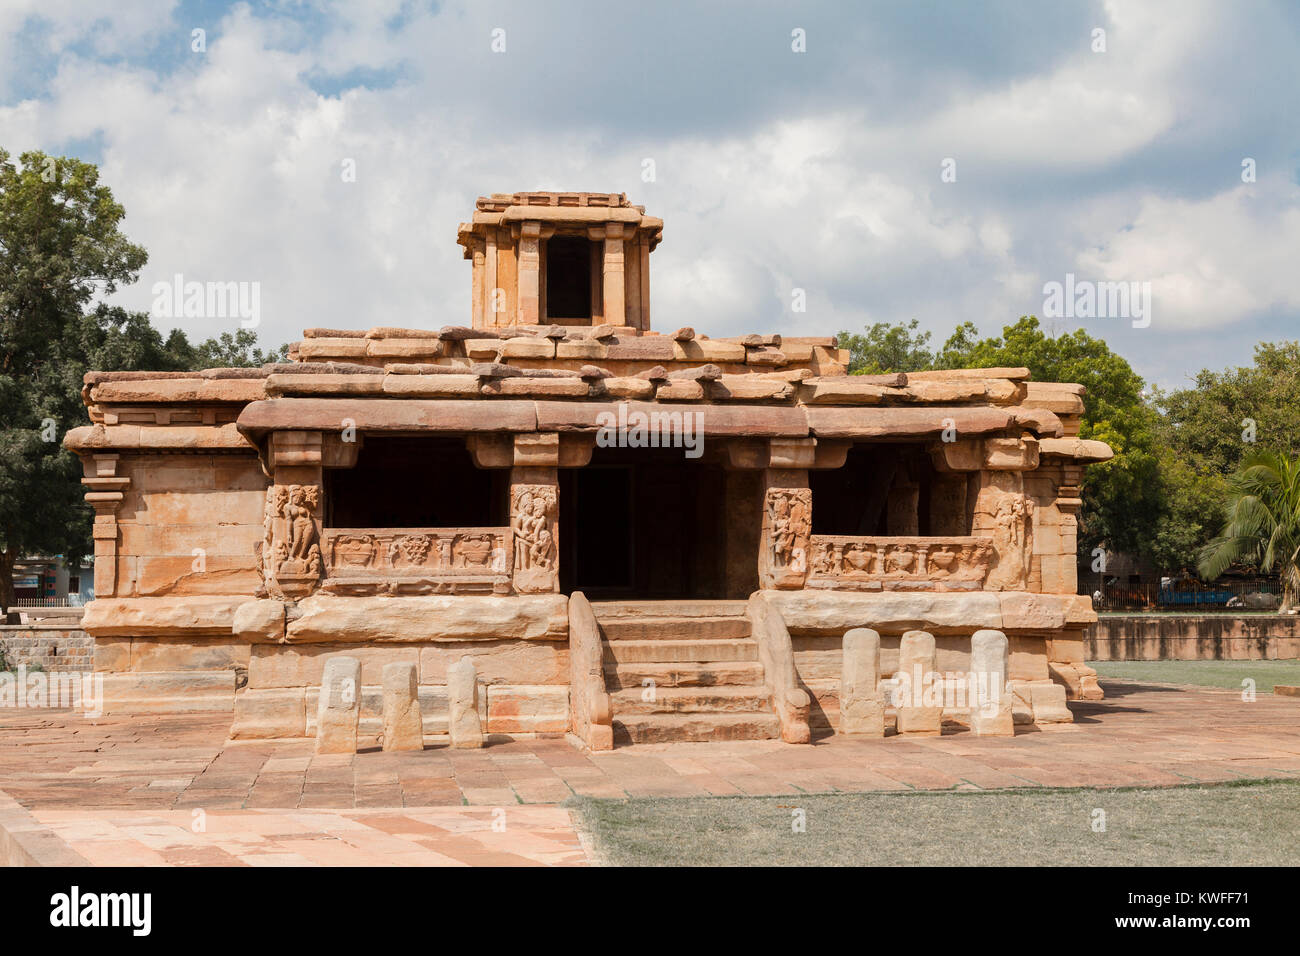 India, Karnataka, Aihole, Lad Khan Temple - Stock Image